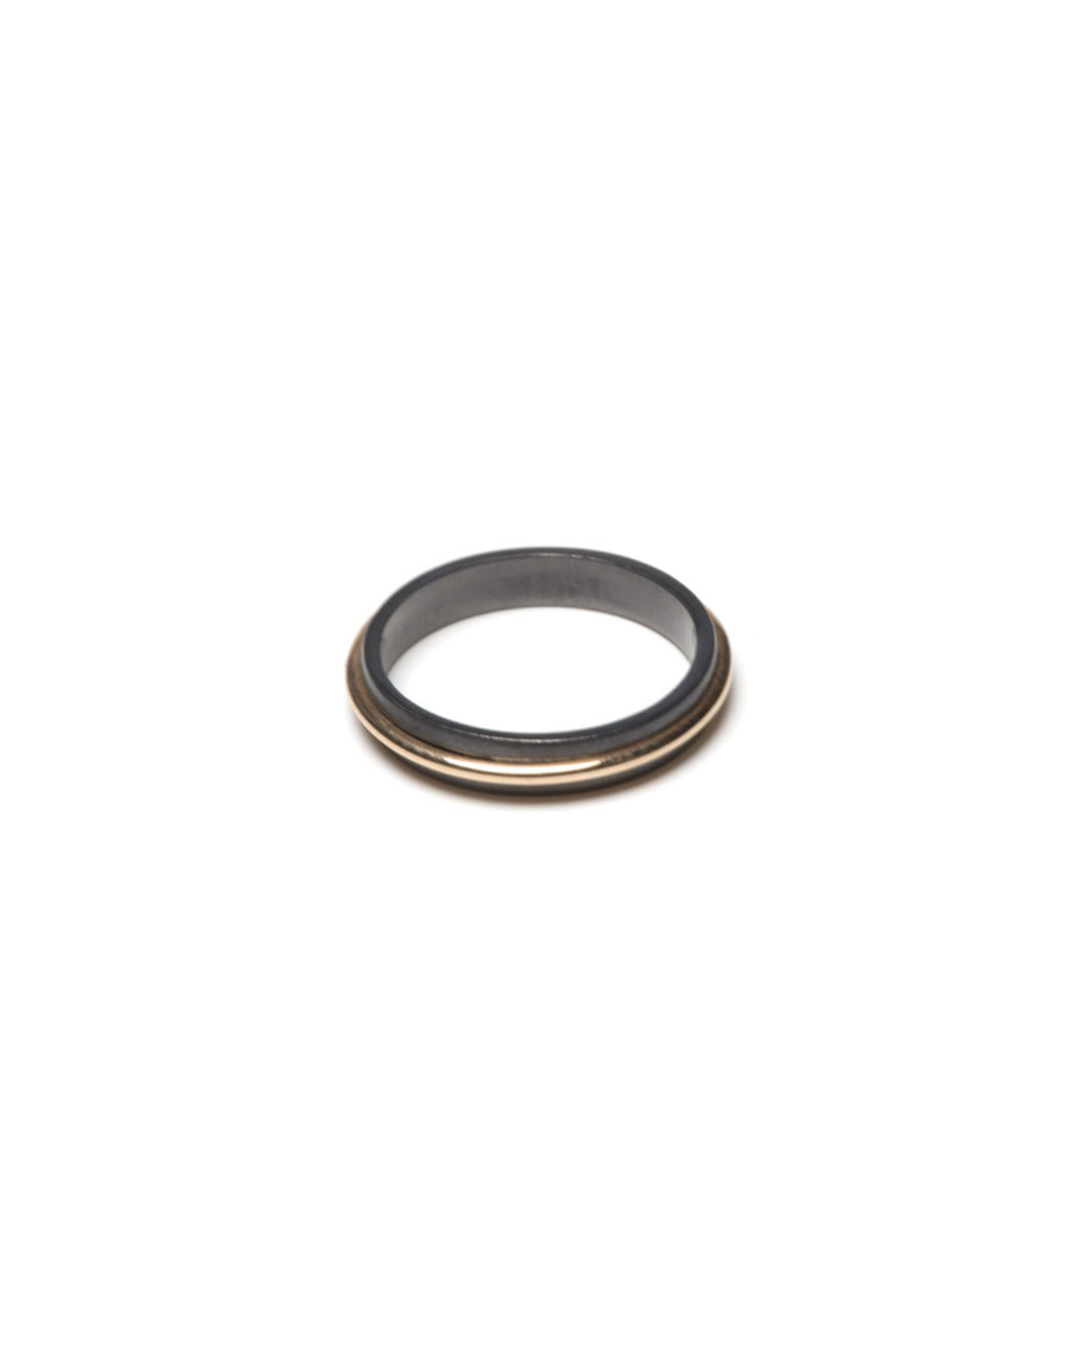 Coen Mulder, untitled, 2019, ring; gold, tantalum, price on request